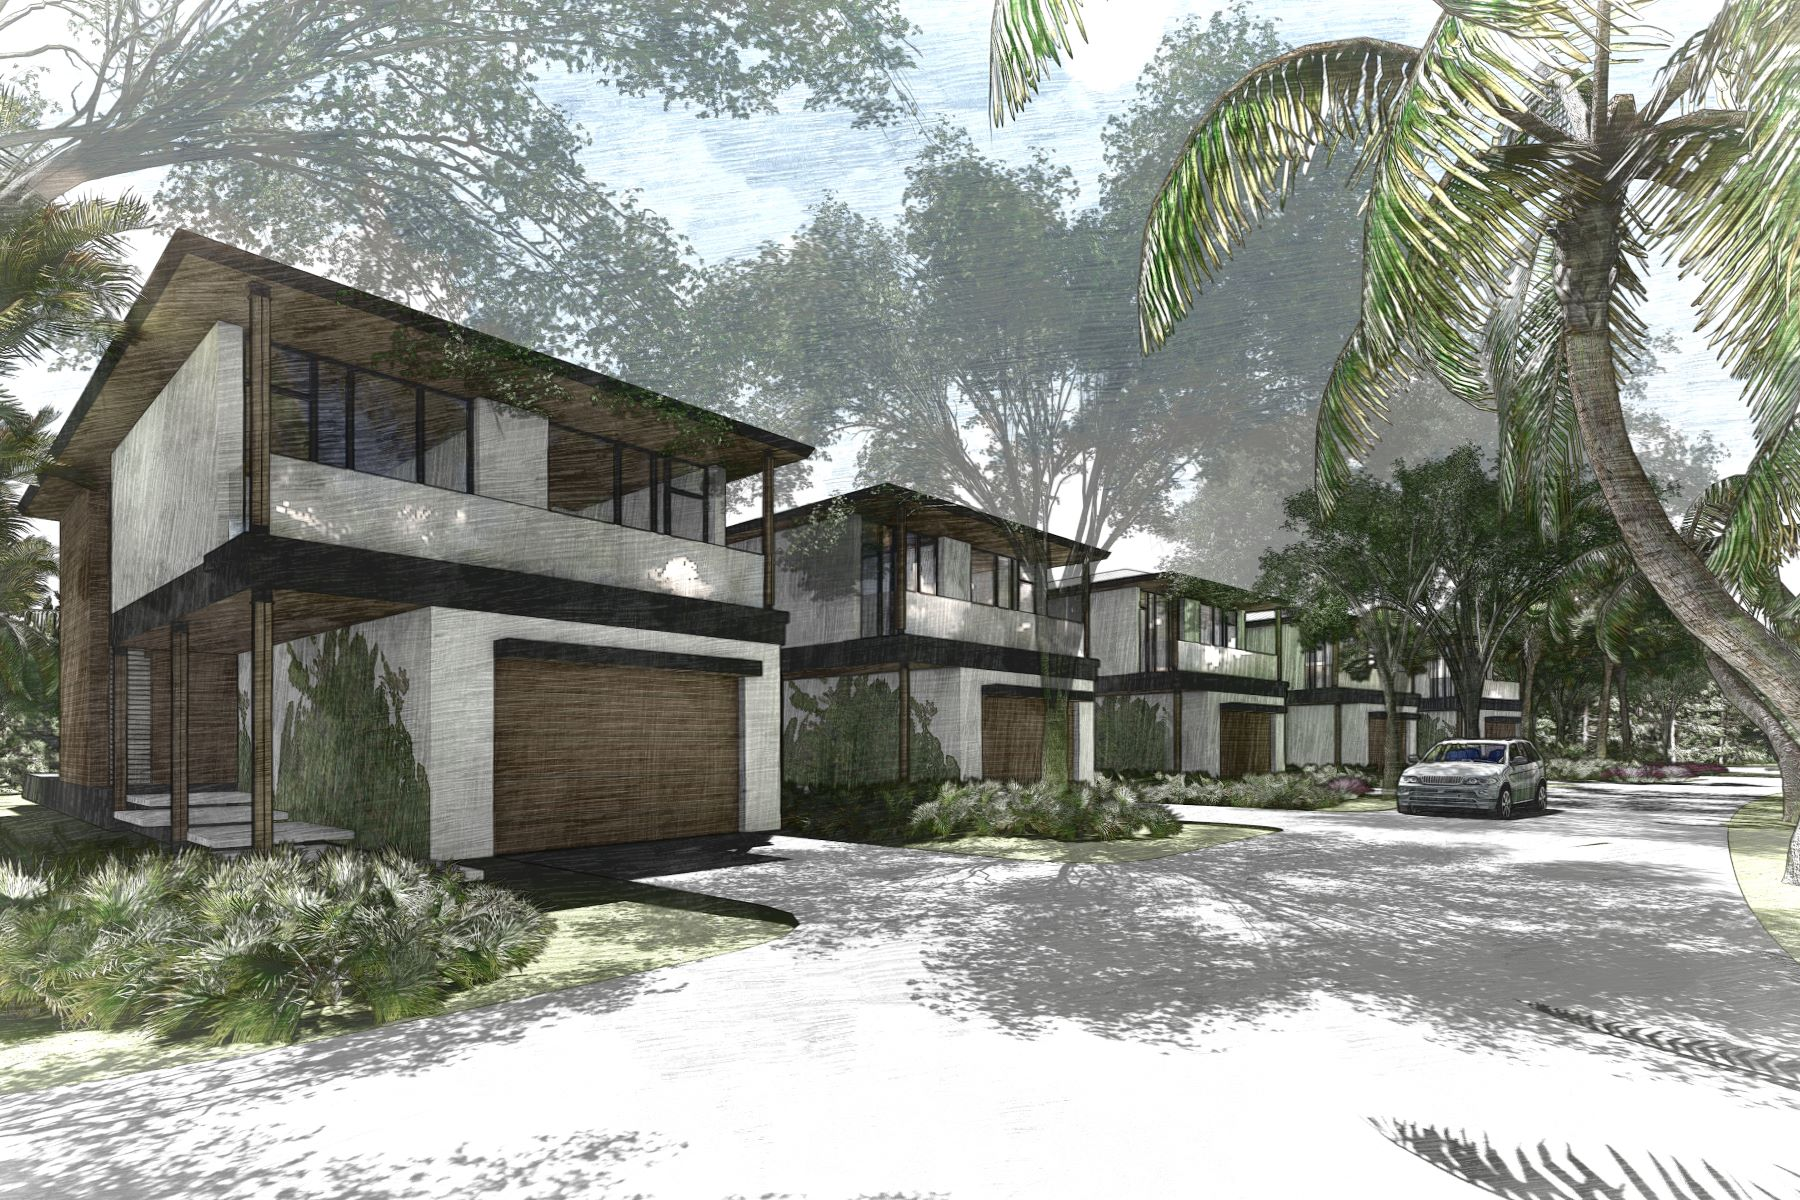 Direct Riverfront New Construction 4840 S Harbor Drive Vero Beach, Florida 32967 Vereinigte Staaten